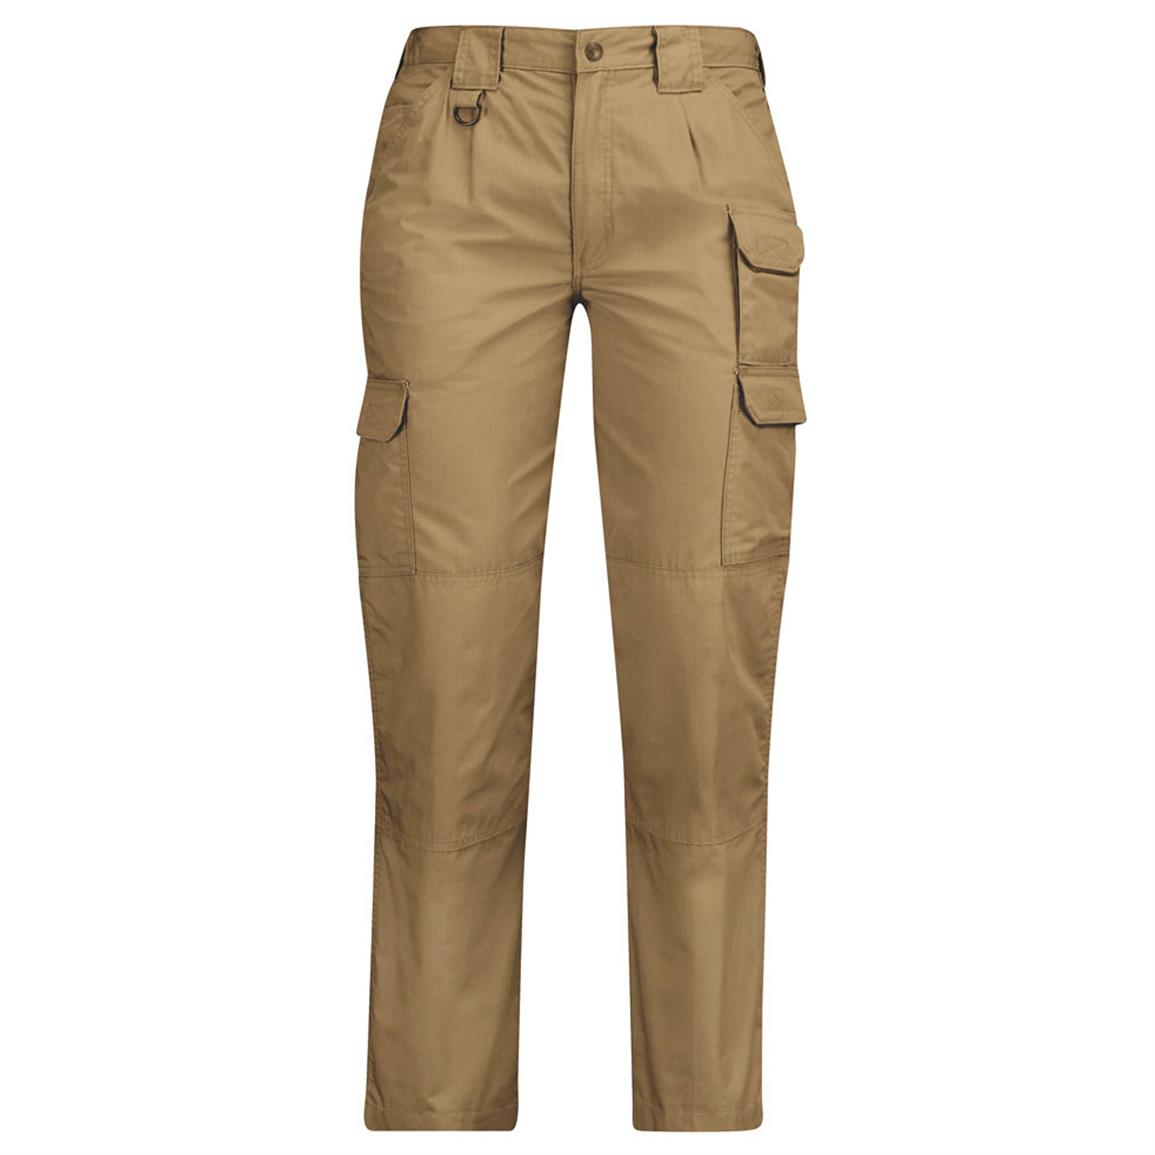 Propper Women's Lightweight Tactical Pants, Coyote Brown